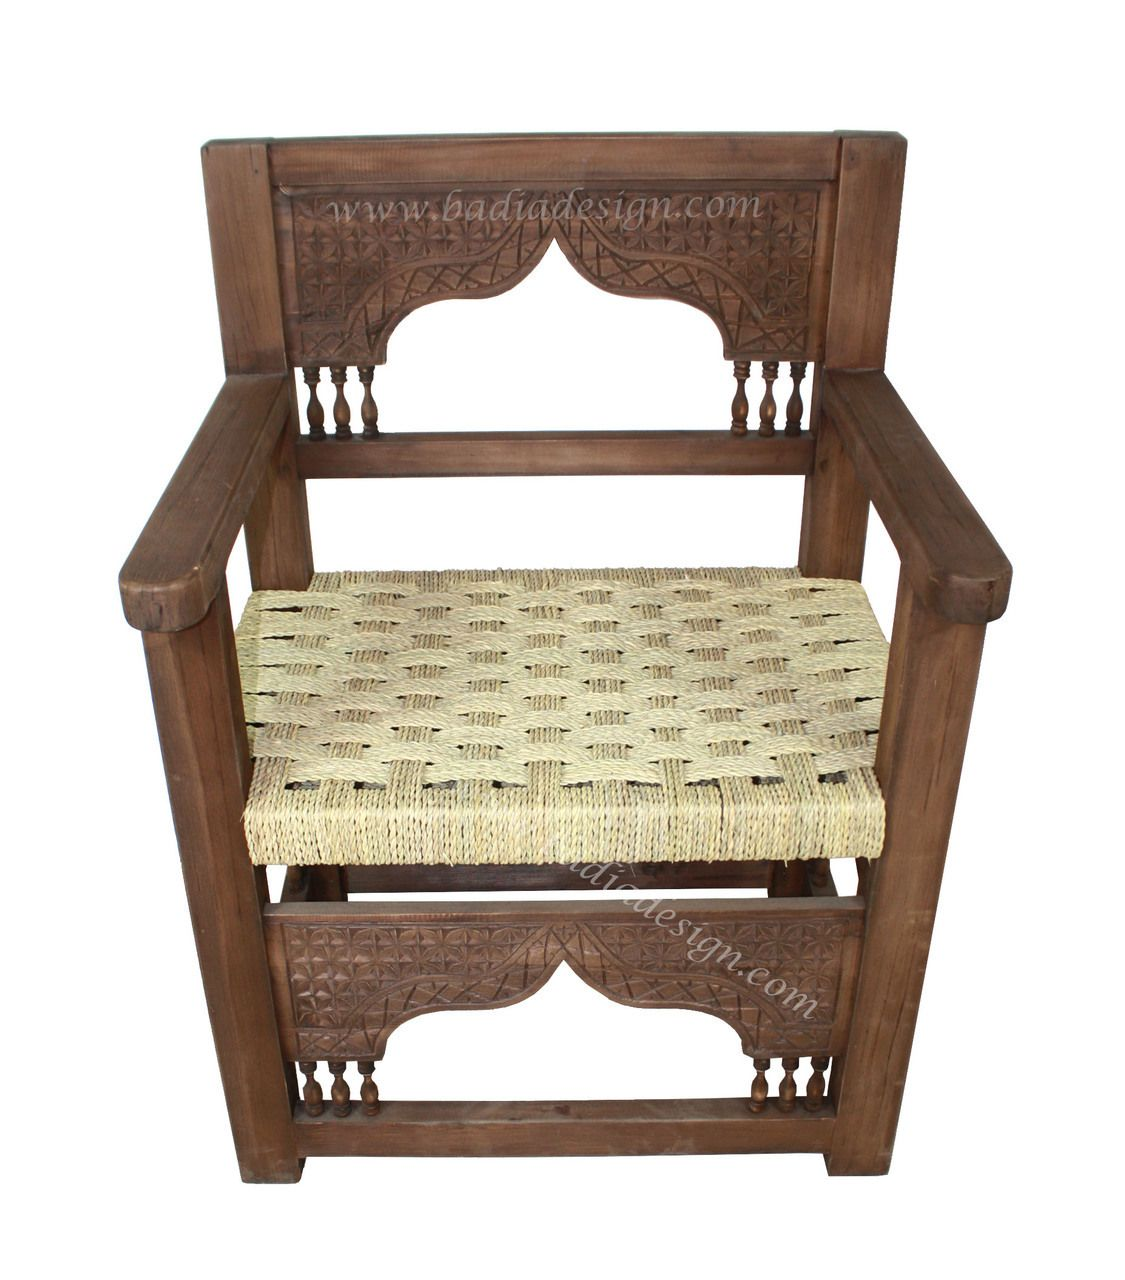 Hand Carved Moroccan Wooden Chair - CW-CH008,  (http://www.badiadesign.com/moroccan-hand-carved-wooden-chair-cw-ch008/)